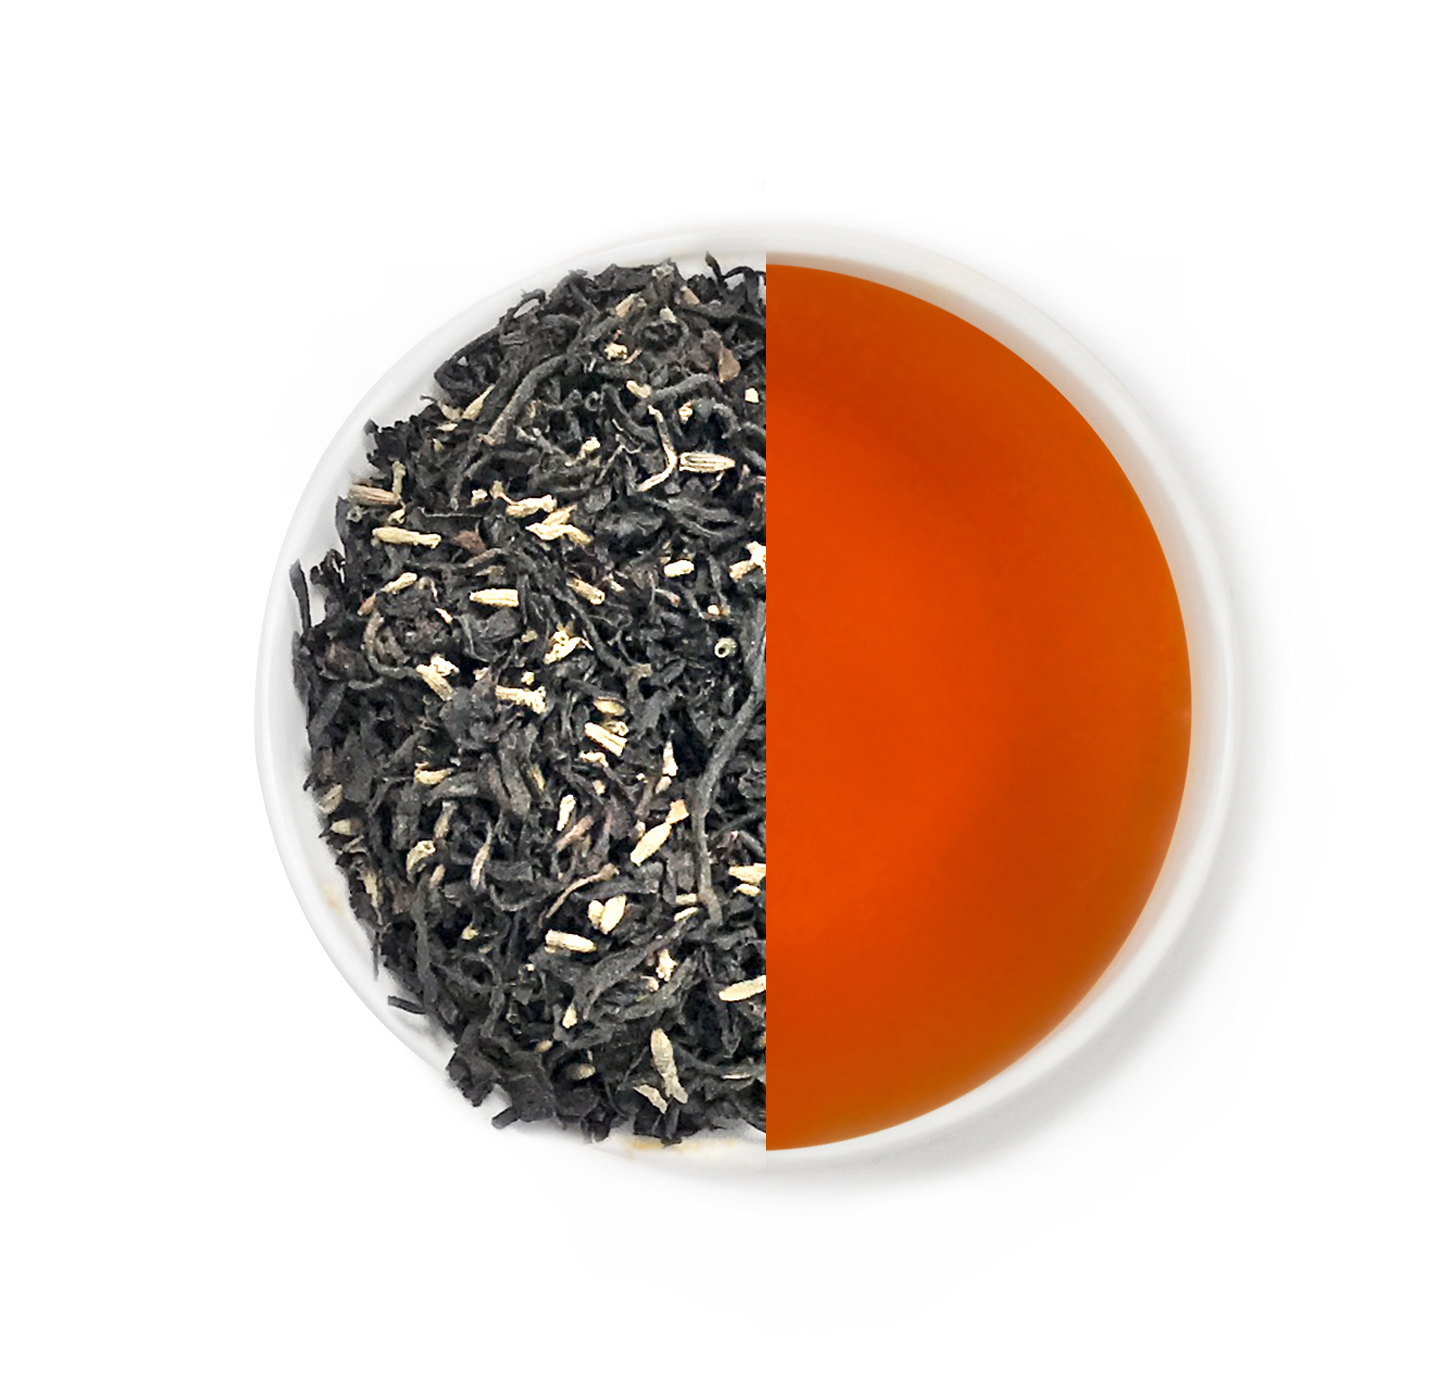 Exotic Bergamot-Flavoured Earl Grey Tea at Best Price